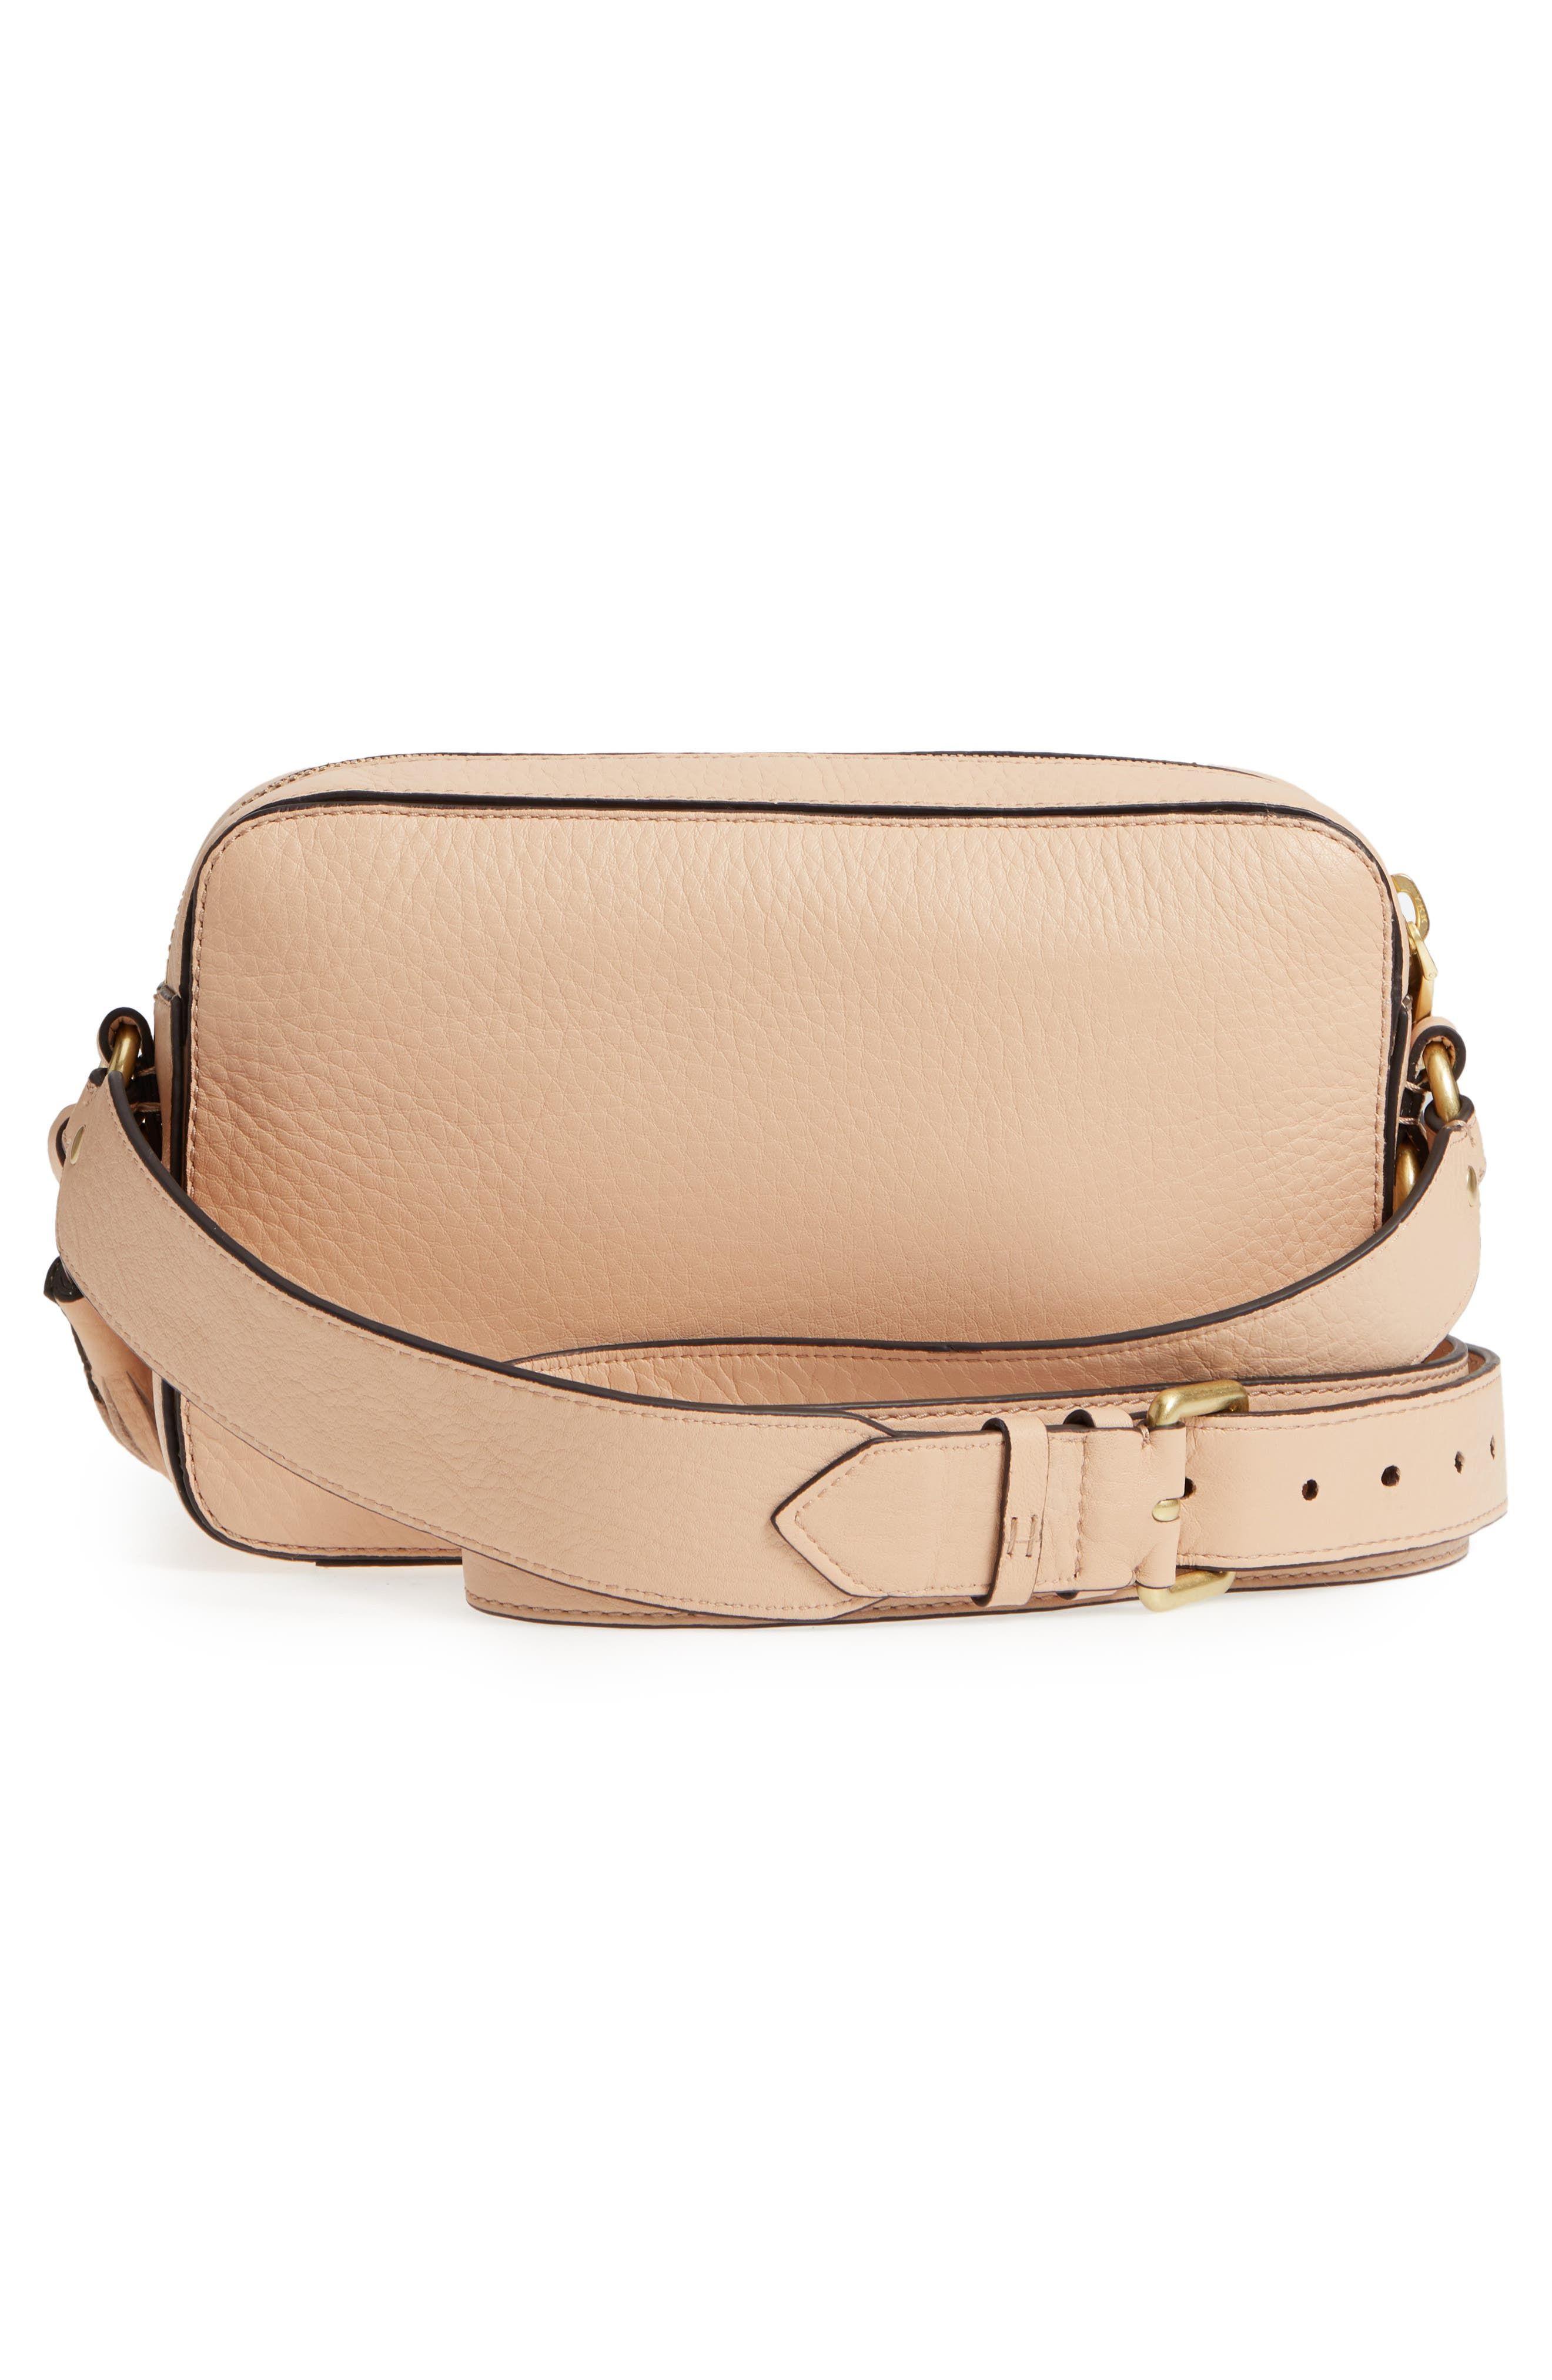 Cassidy RFID Pebbled Leather Camera Bag,                             Alternate thumbnail 11, color,